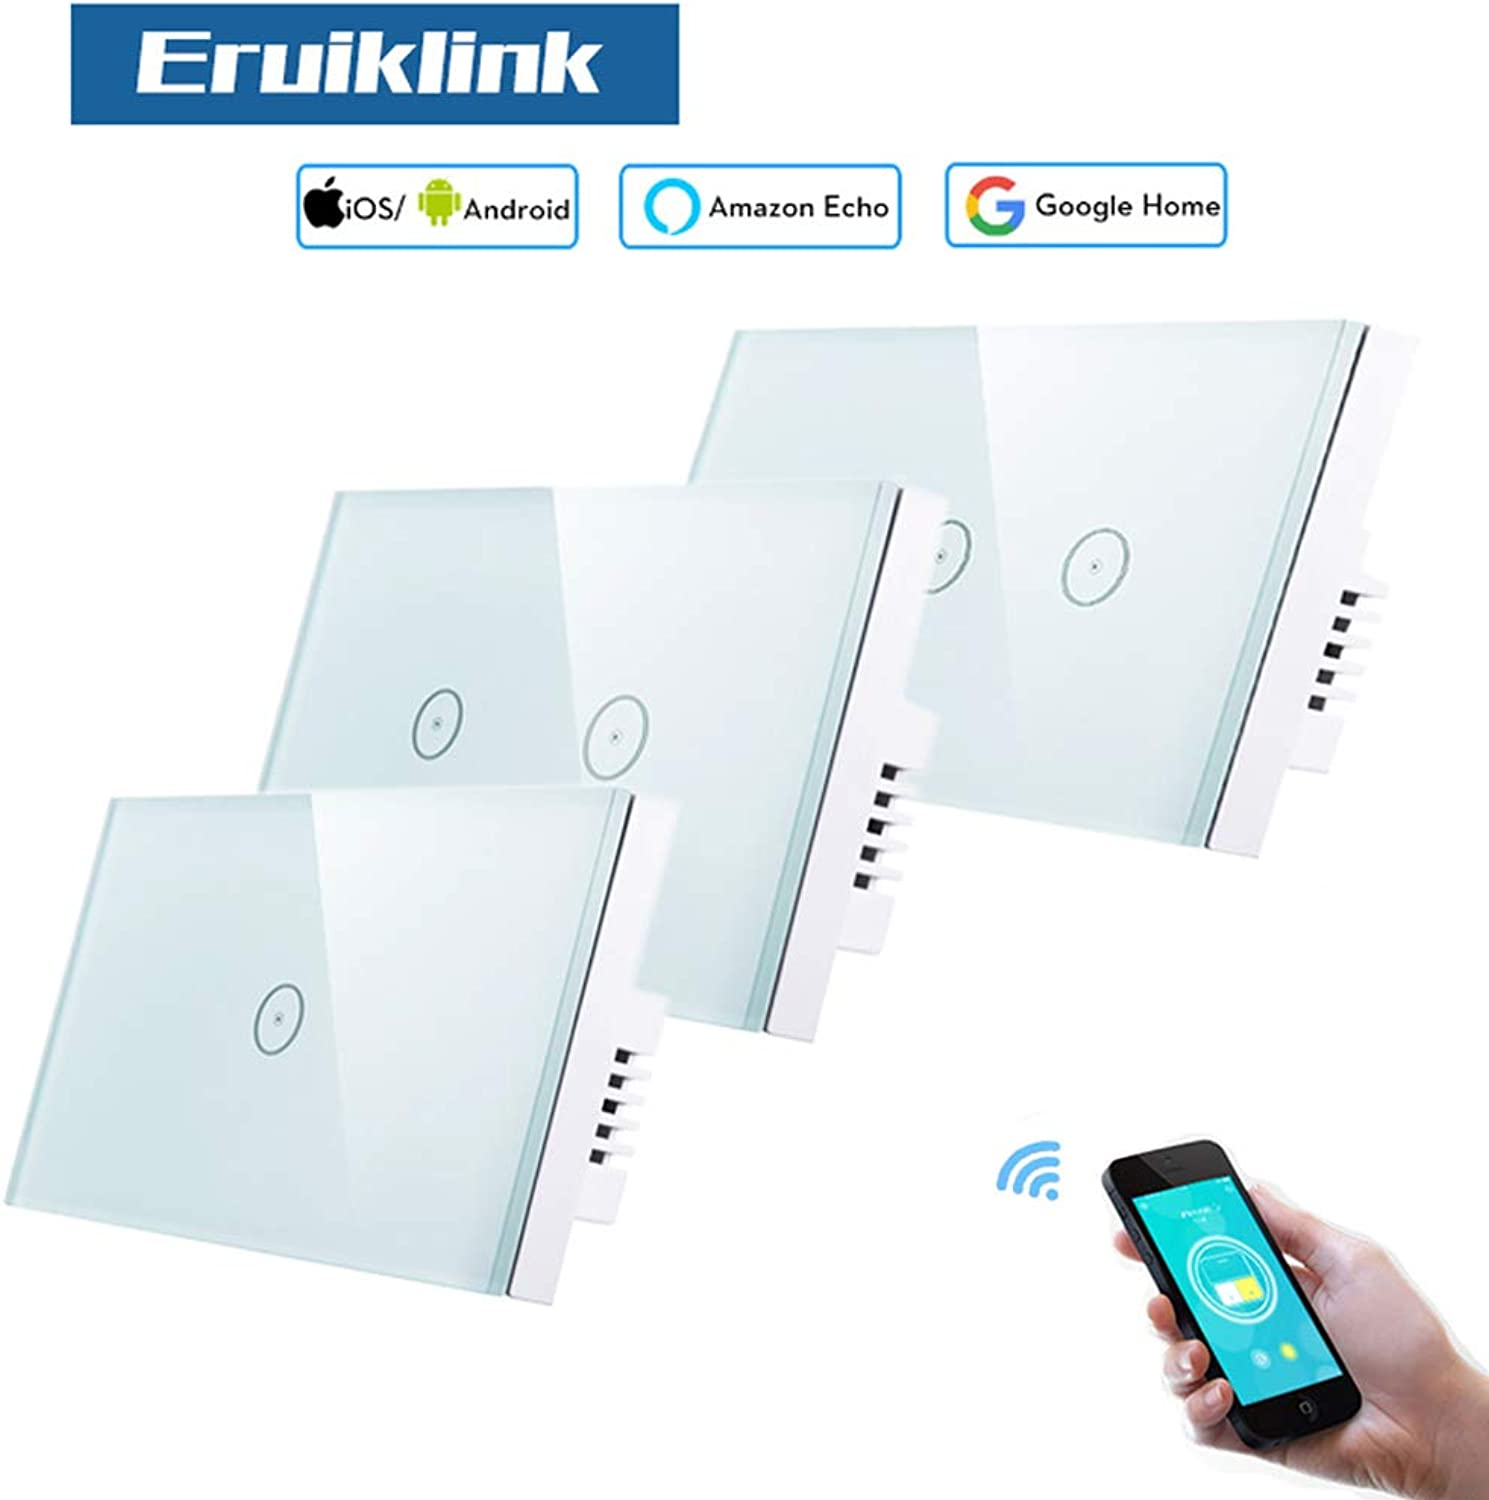 Eruiklink WiFi 1 2 3Gang Crystal Glass Touch Switches, Smart WiFi Light Switches Compatible with Alexa for Smart Home APP Control  (Voltage  110240, Number of Gangs  2Gang, Standard  US Standard)